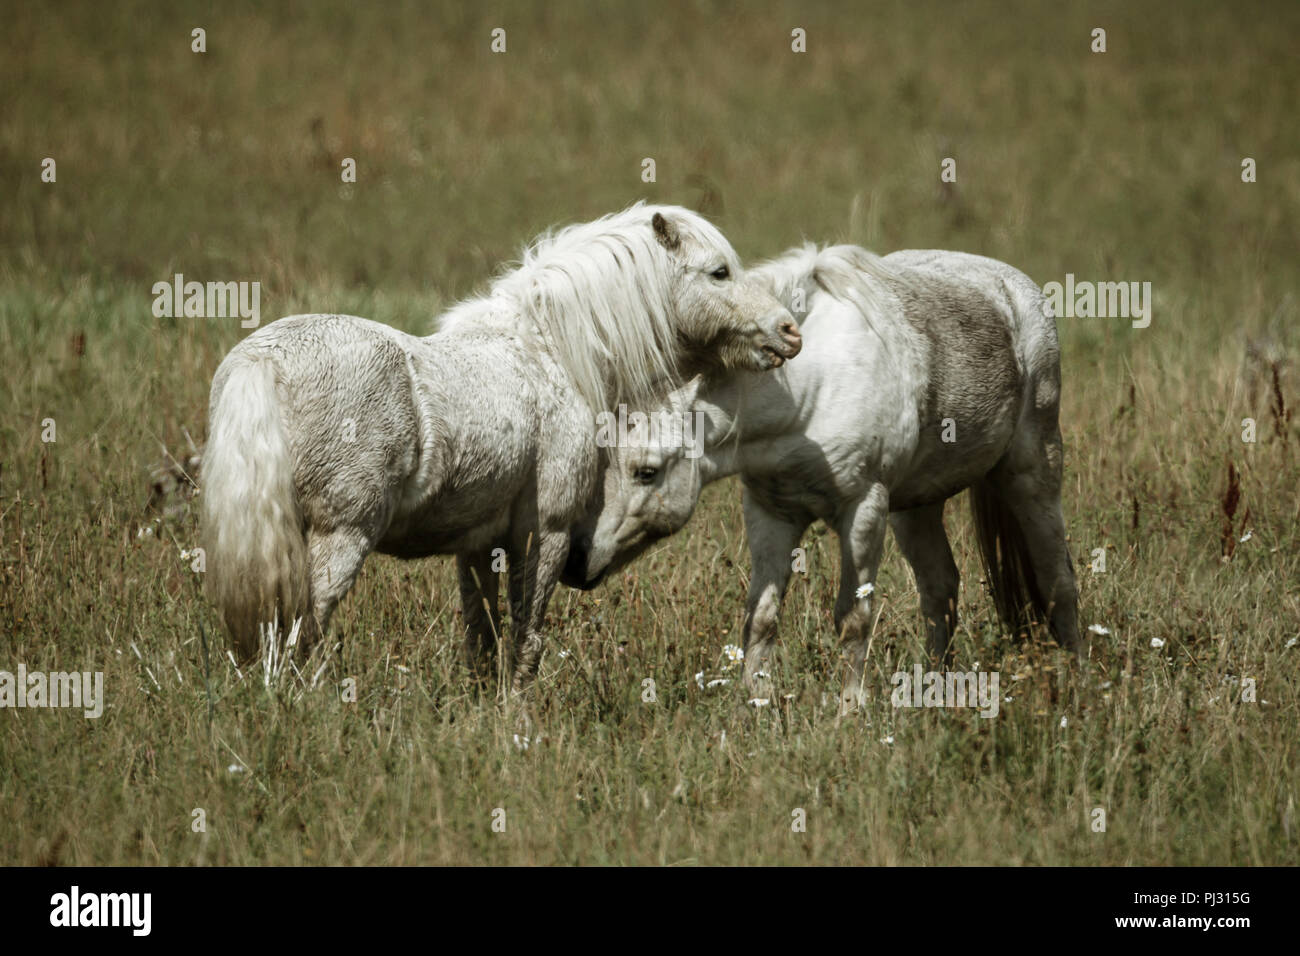 Two white horses interact with each other near Hauser, Idaho. - Stock Image